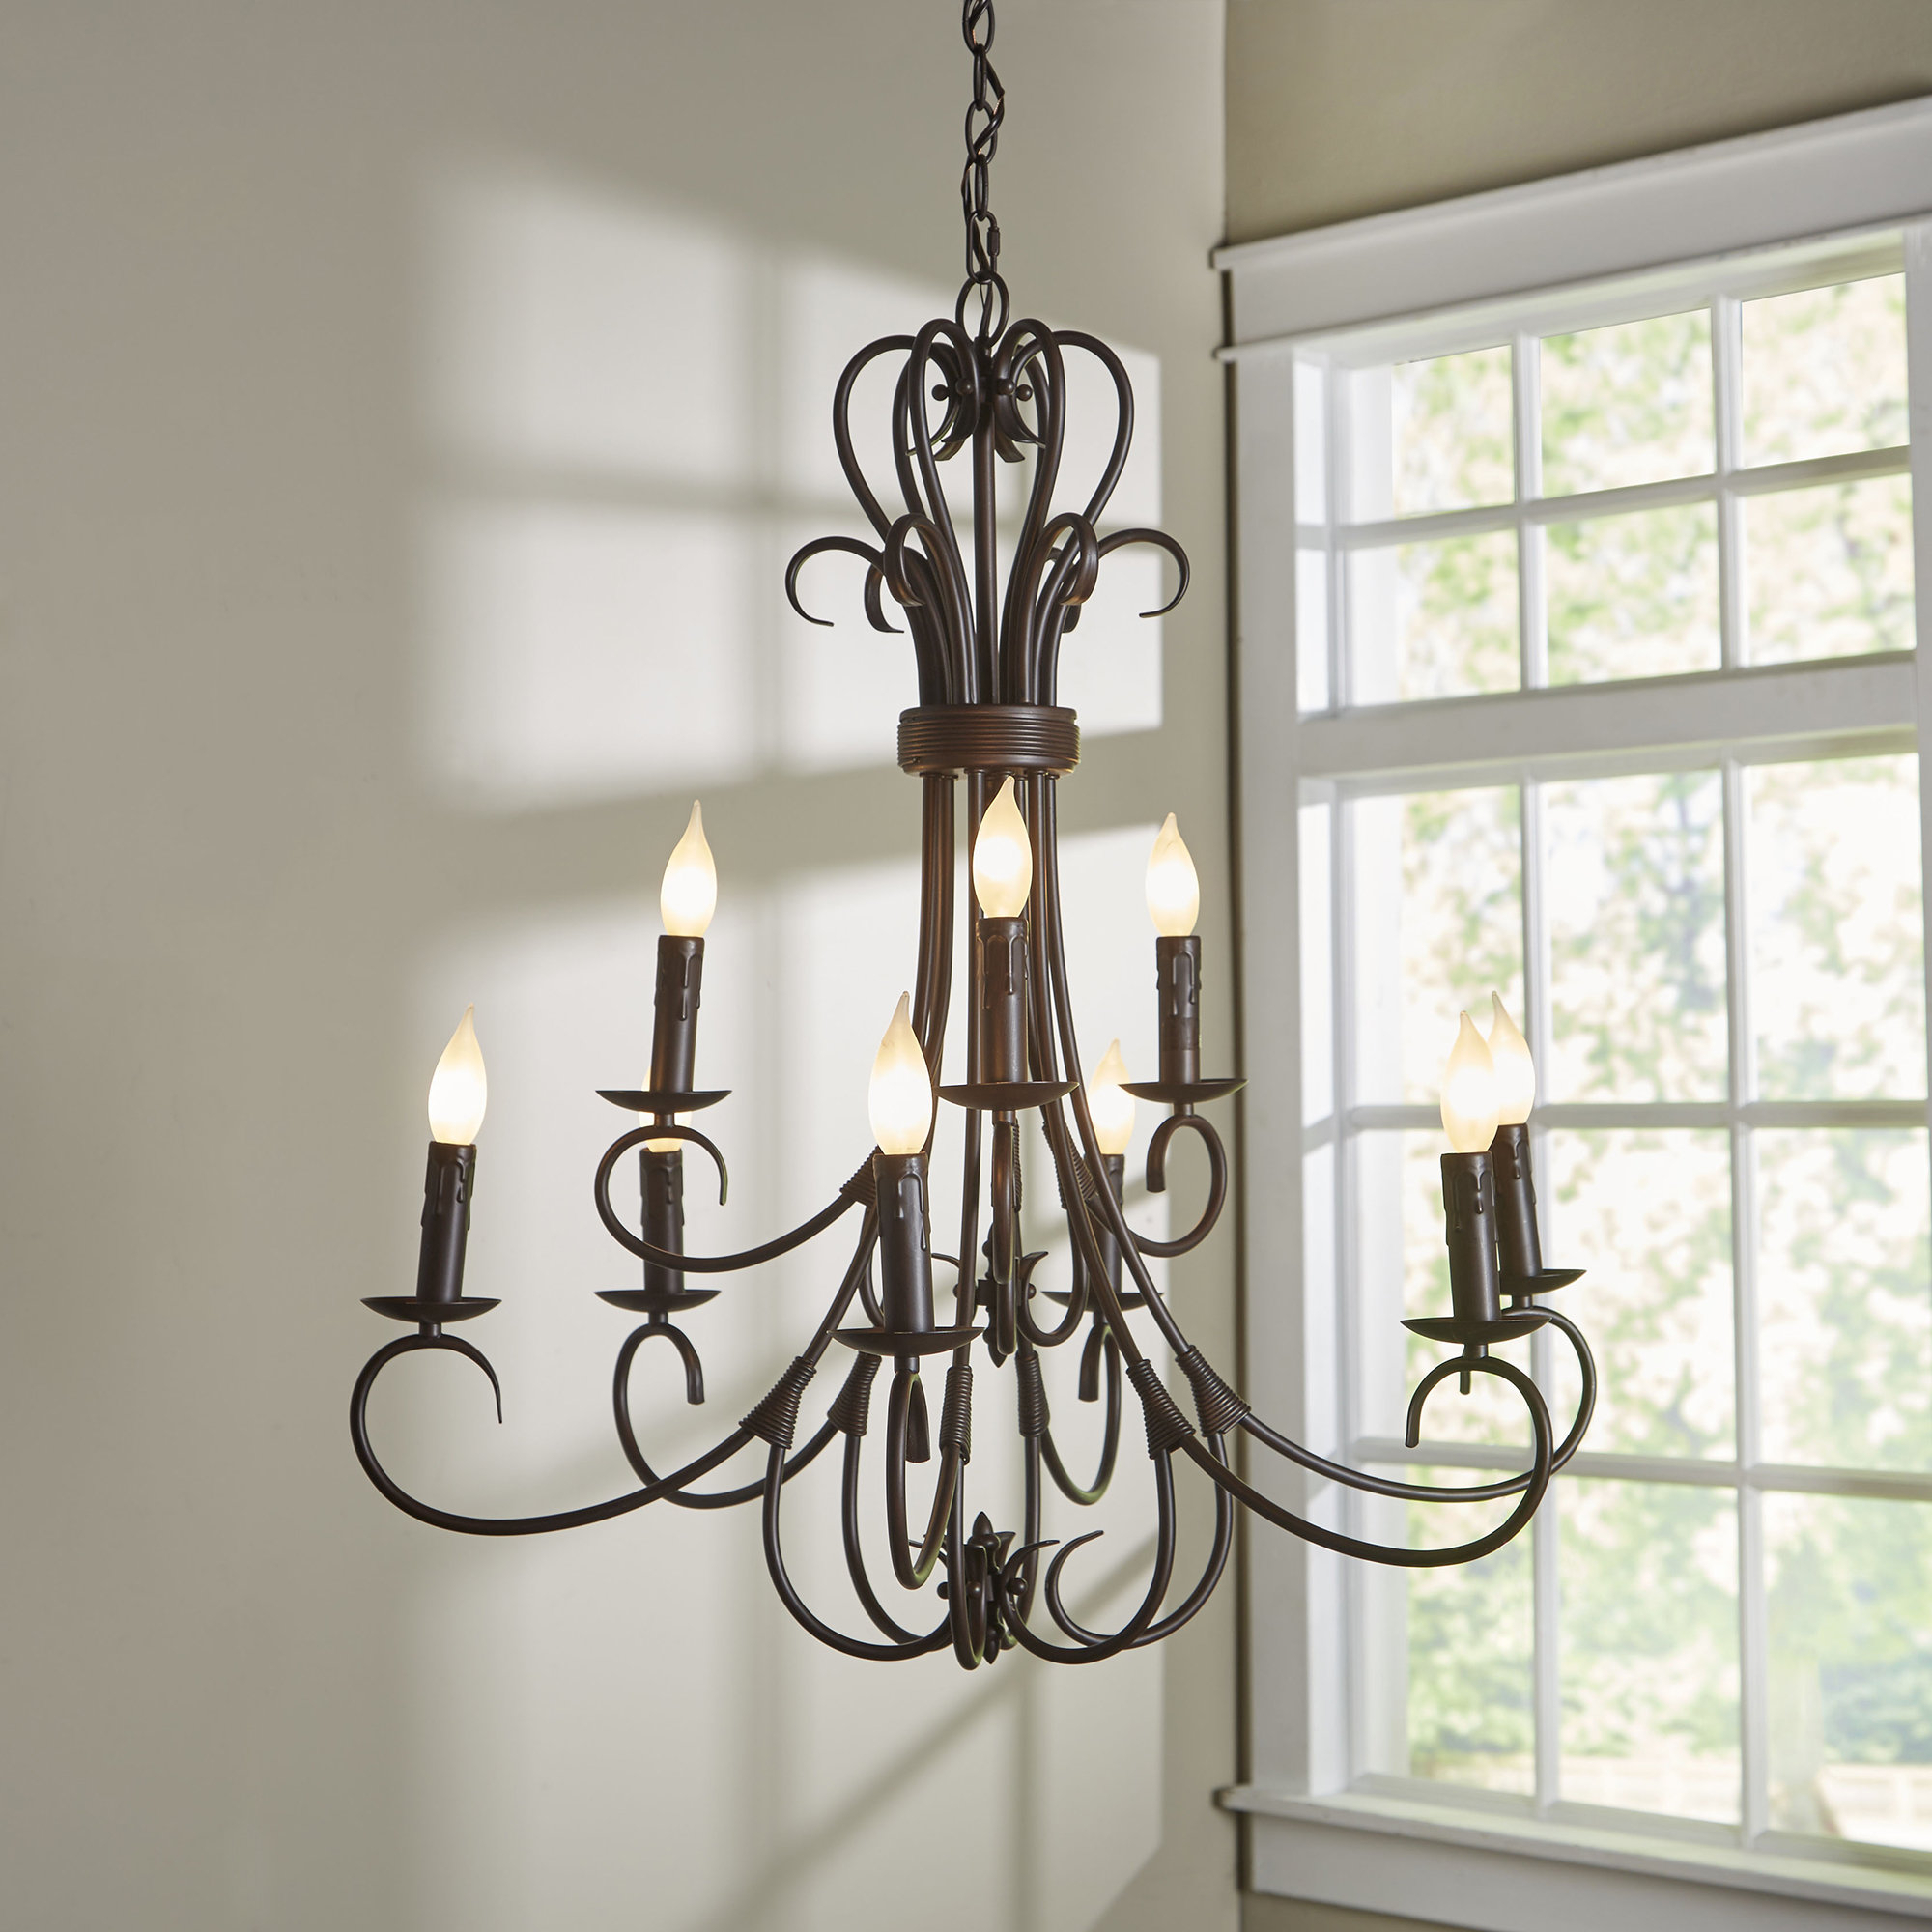 Best And Newest Alcott Hill Gaines 9 Light Candle Style Chandelier With Regard To Gaines 5 Light Shaded Chandeliers (View 4 of 20)